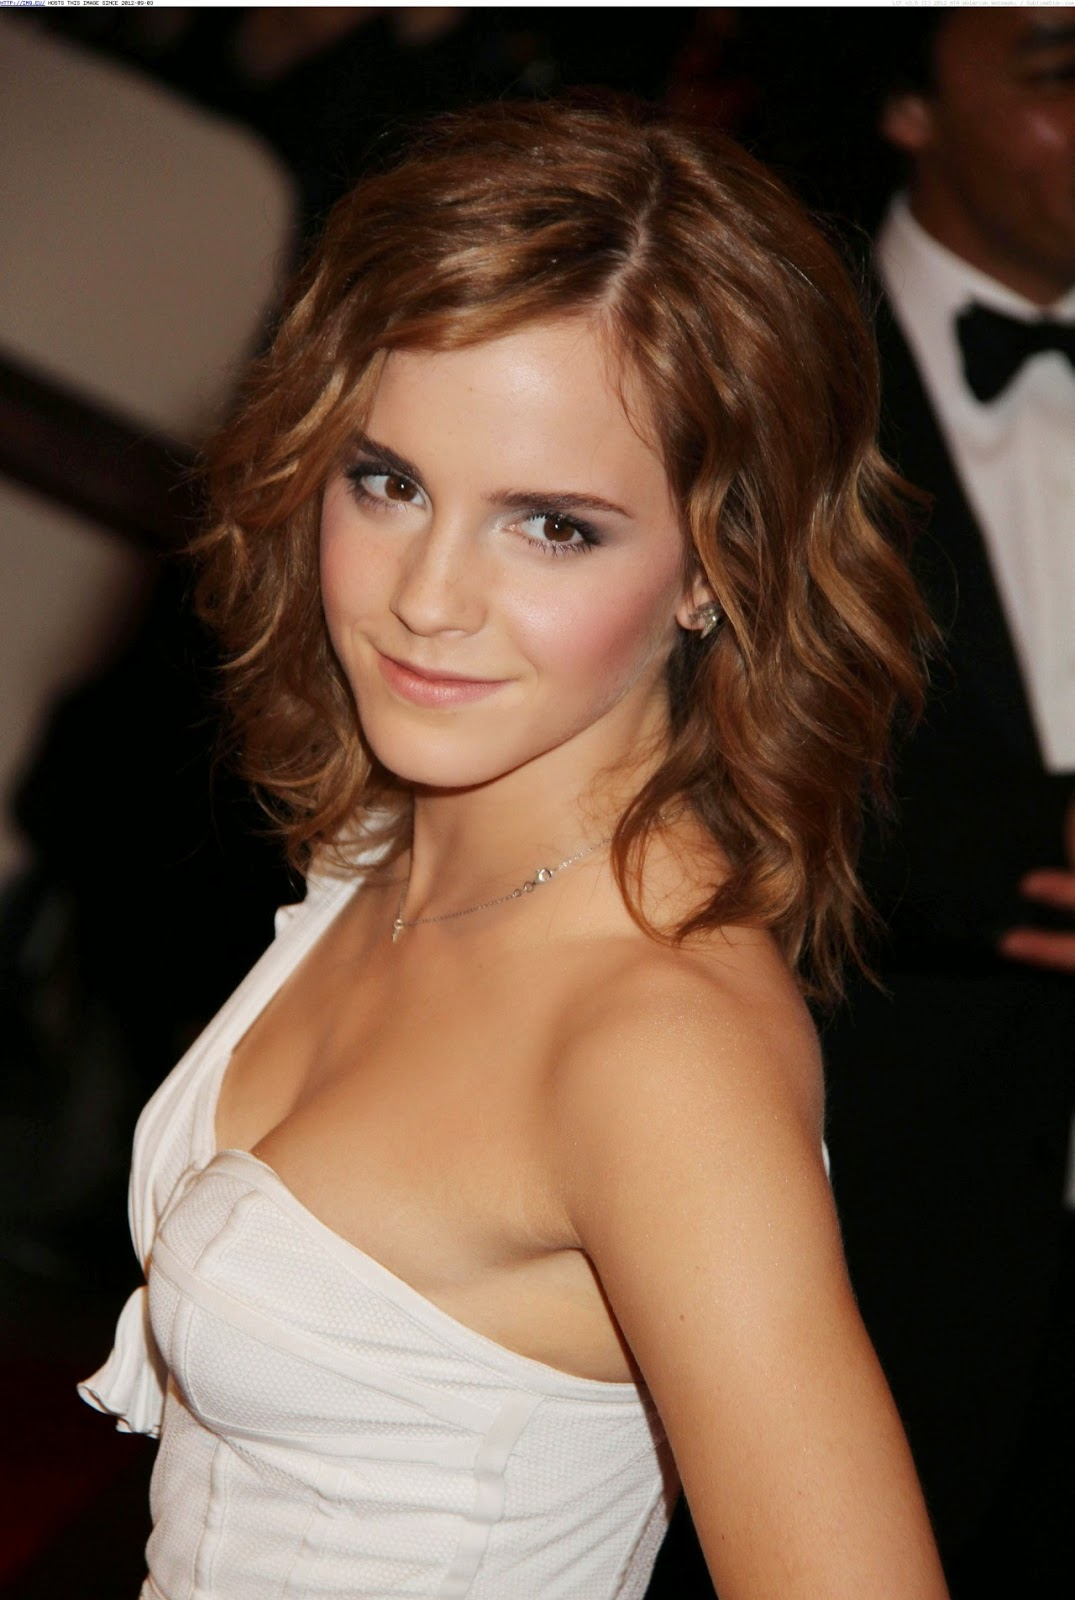 wallpaper.wiki-cute-emma-watson-hot-pics-pic-wpb006610 | wallpaper.wiki